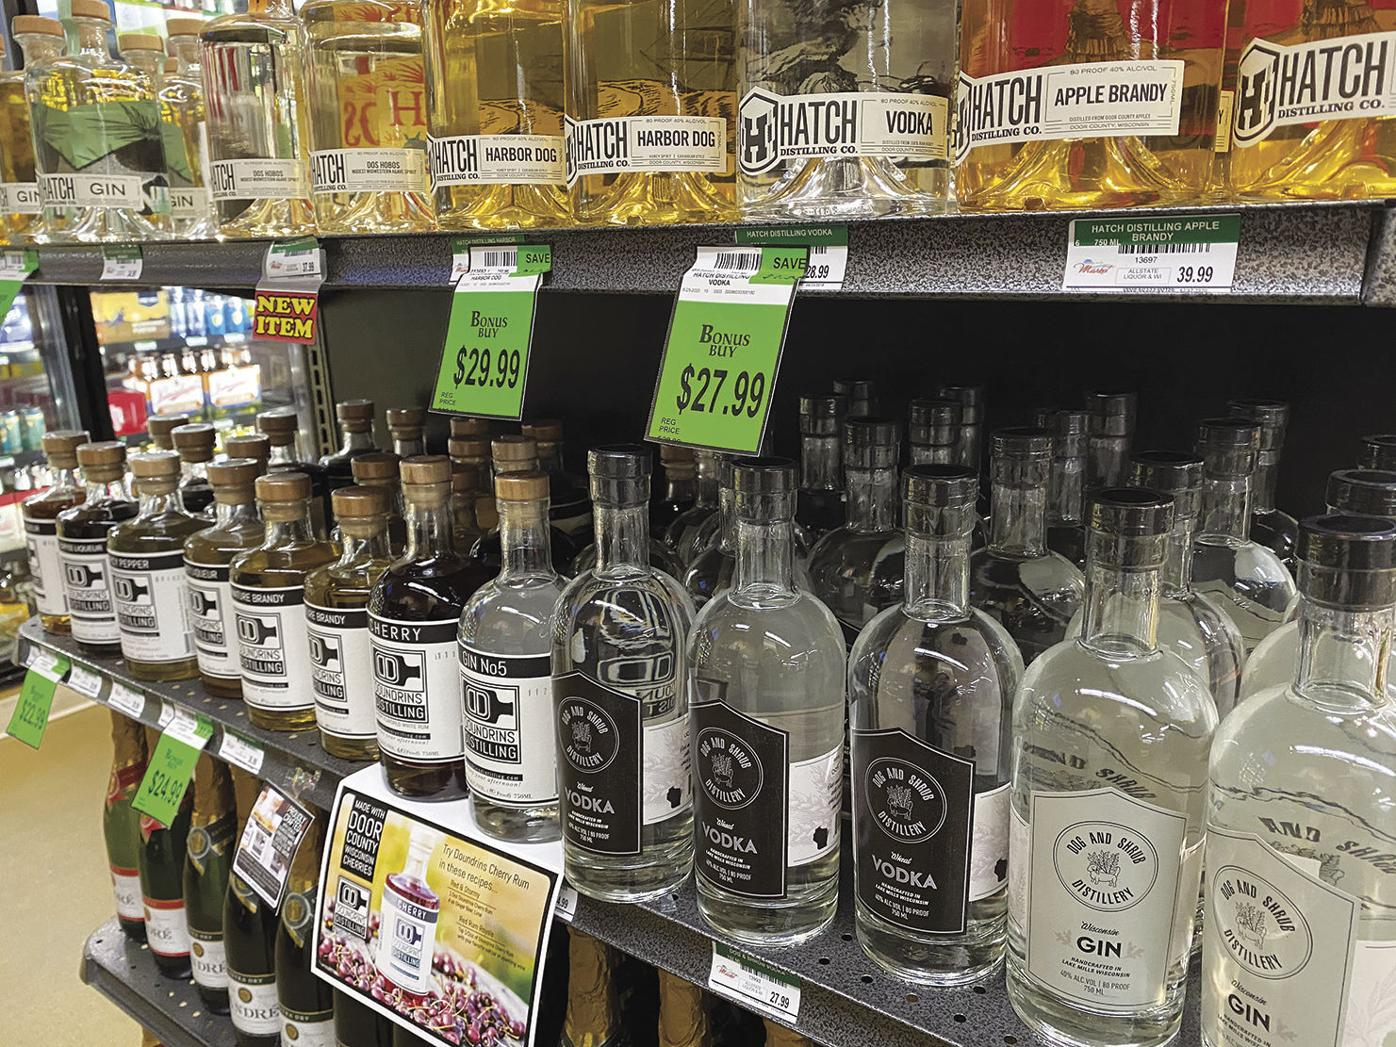 Sale of alcoholic beverages up locally, nationally